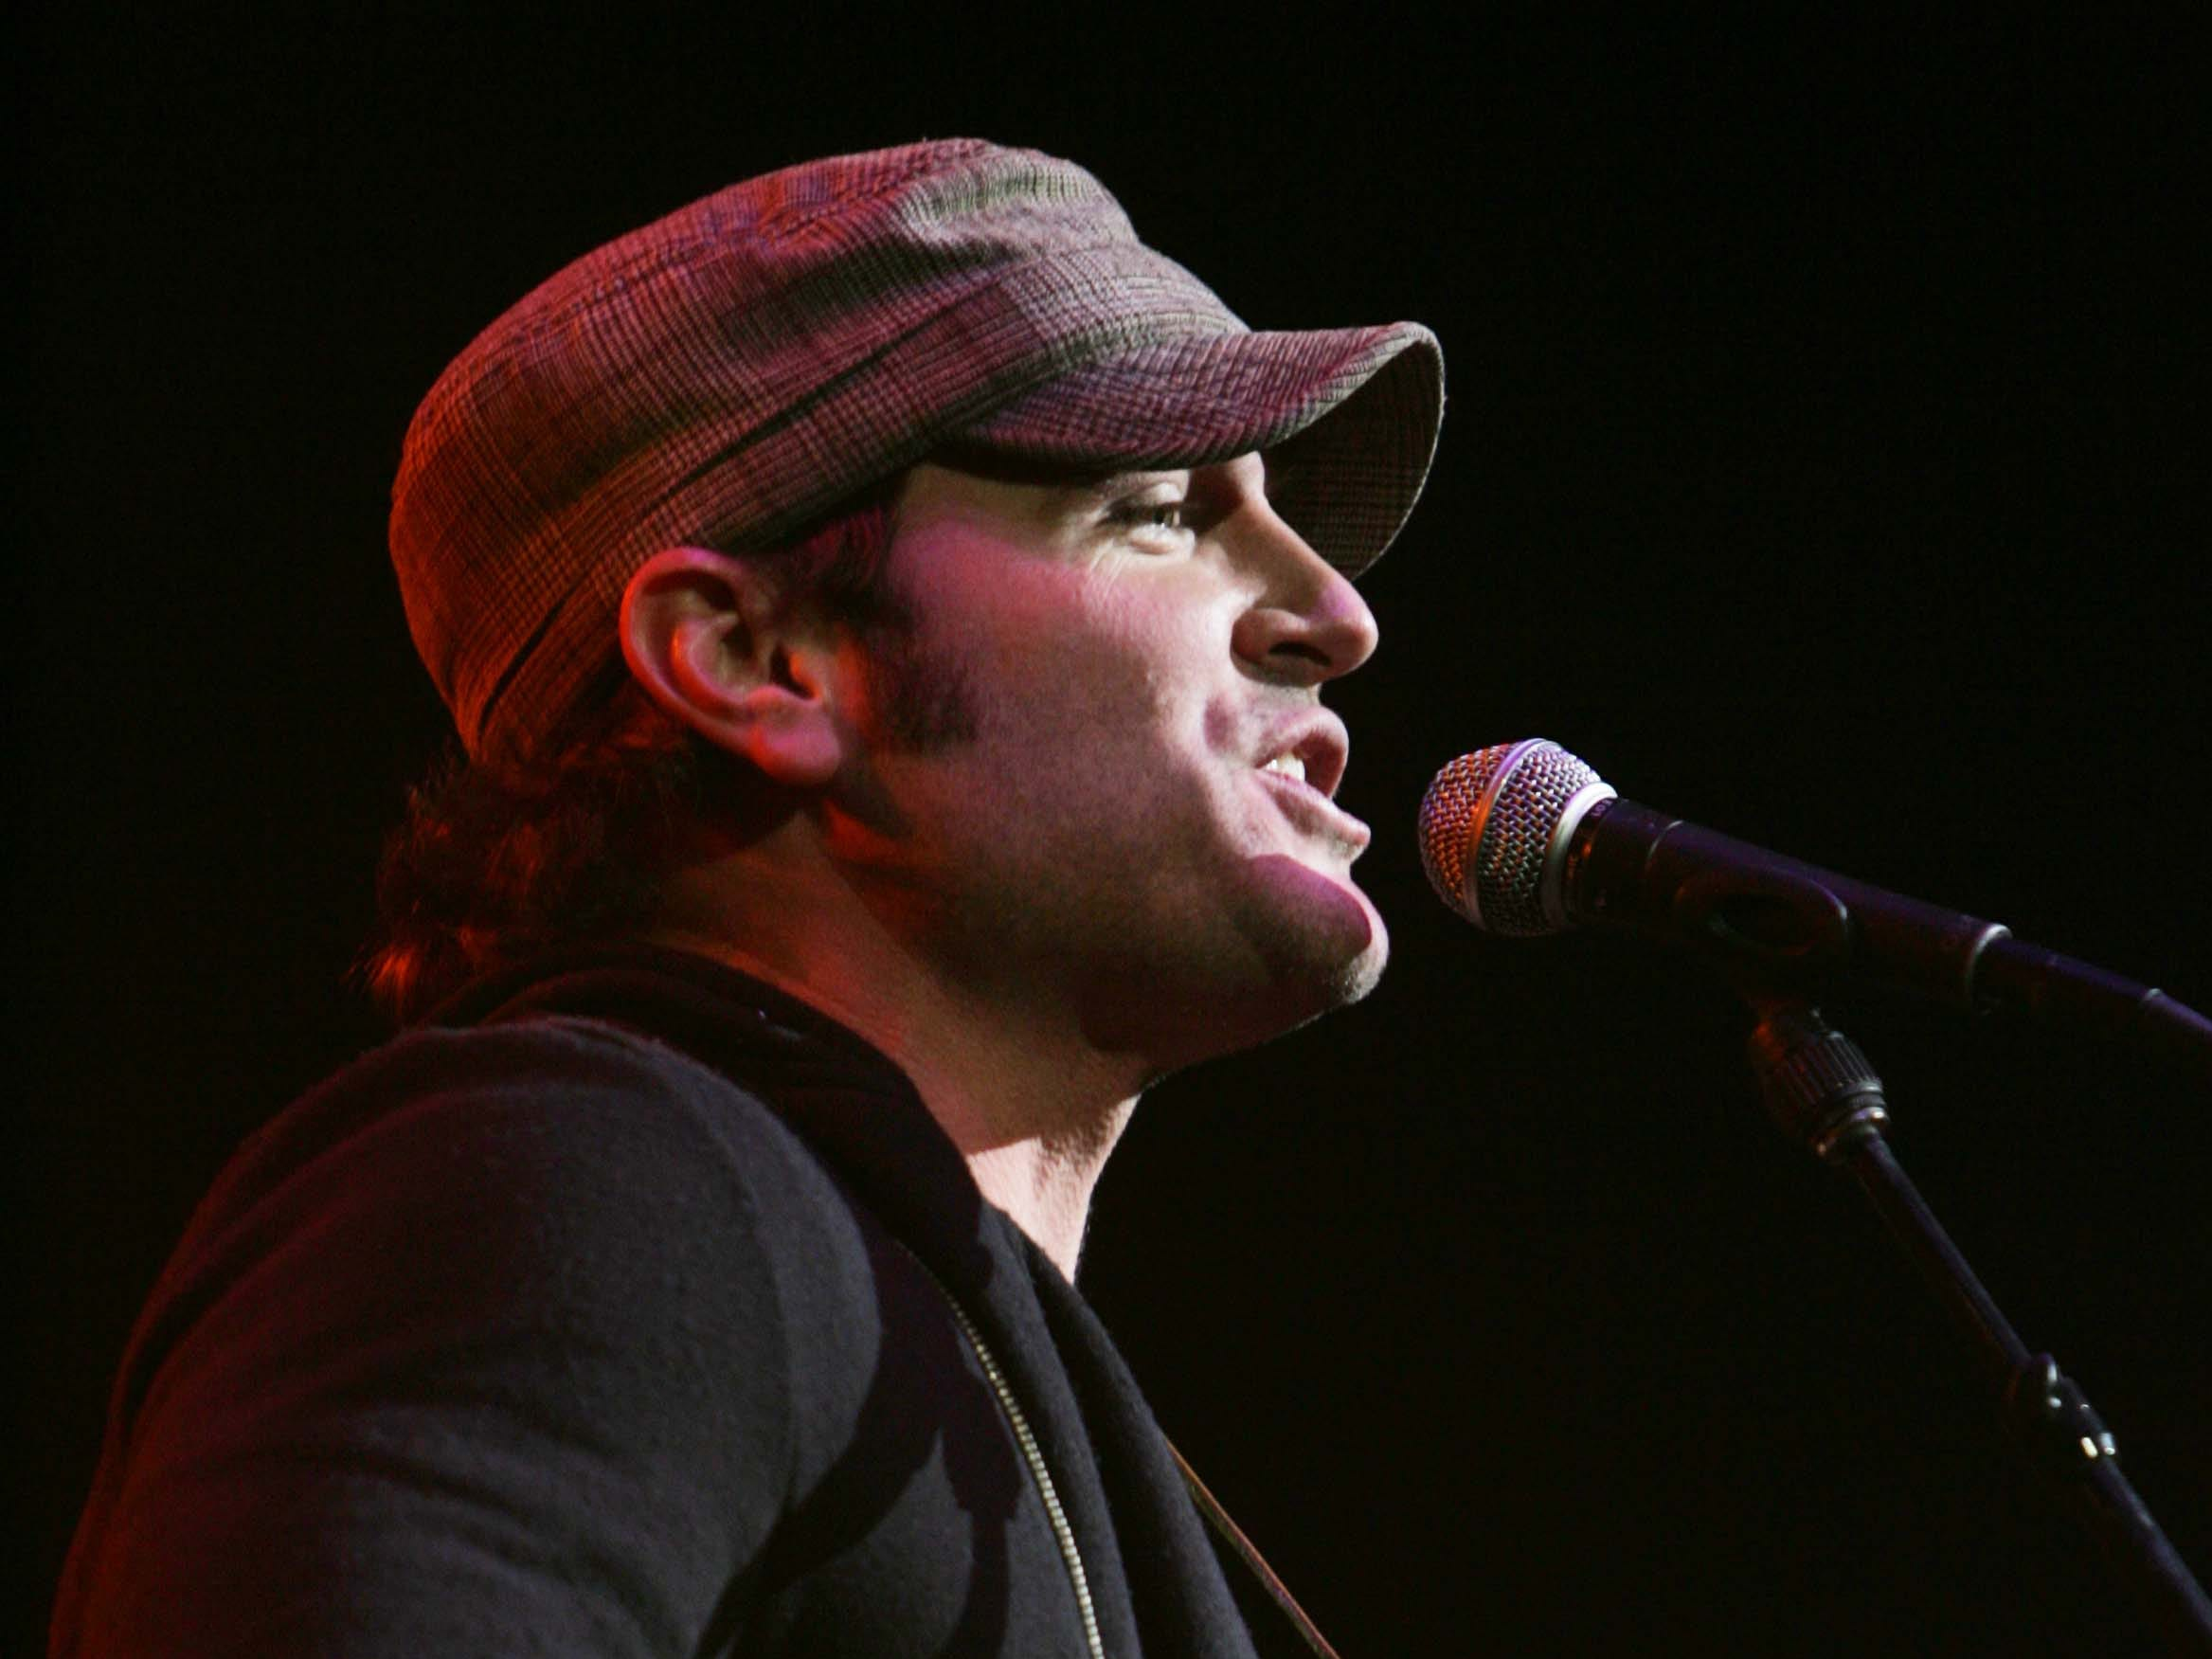 Jerrod Niemann is scheduled to play the Budweiser Forever Country Stage at CMA Fest 2019.